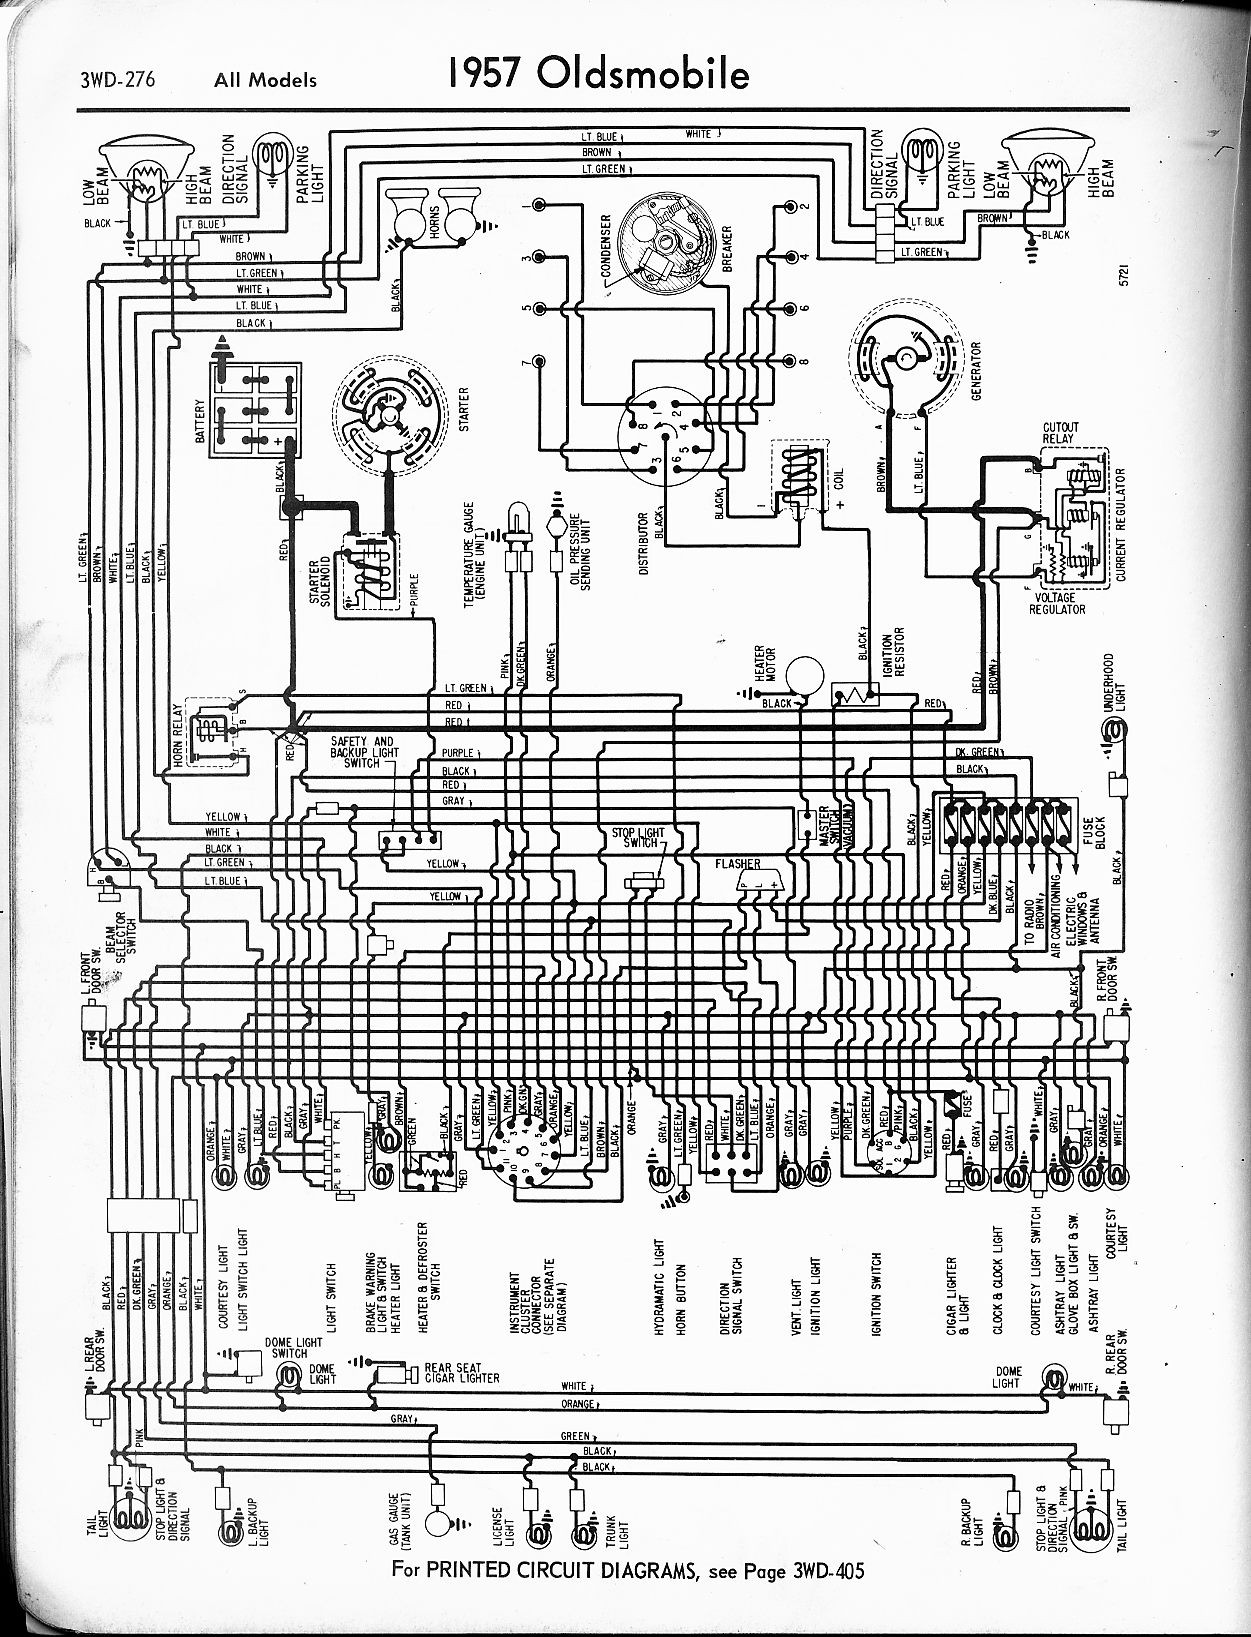 ... 1996 oldsmobile cutl supreme wiring diagram electrical drawing rh g  news co 1994 Oldsmobile Cutl Ciera